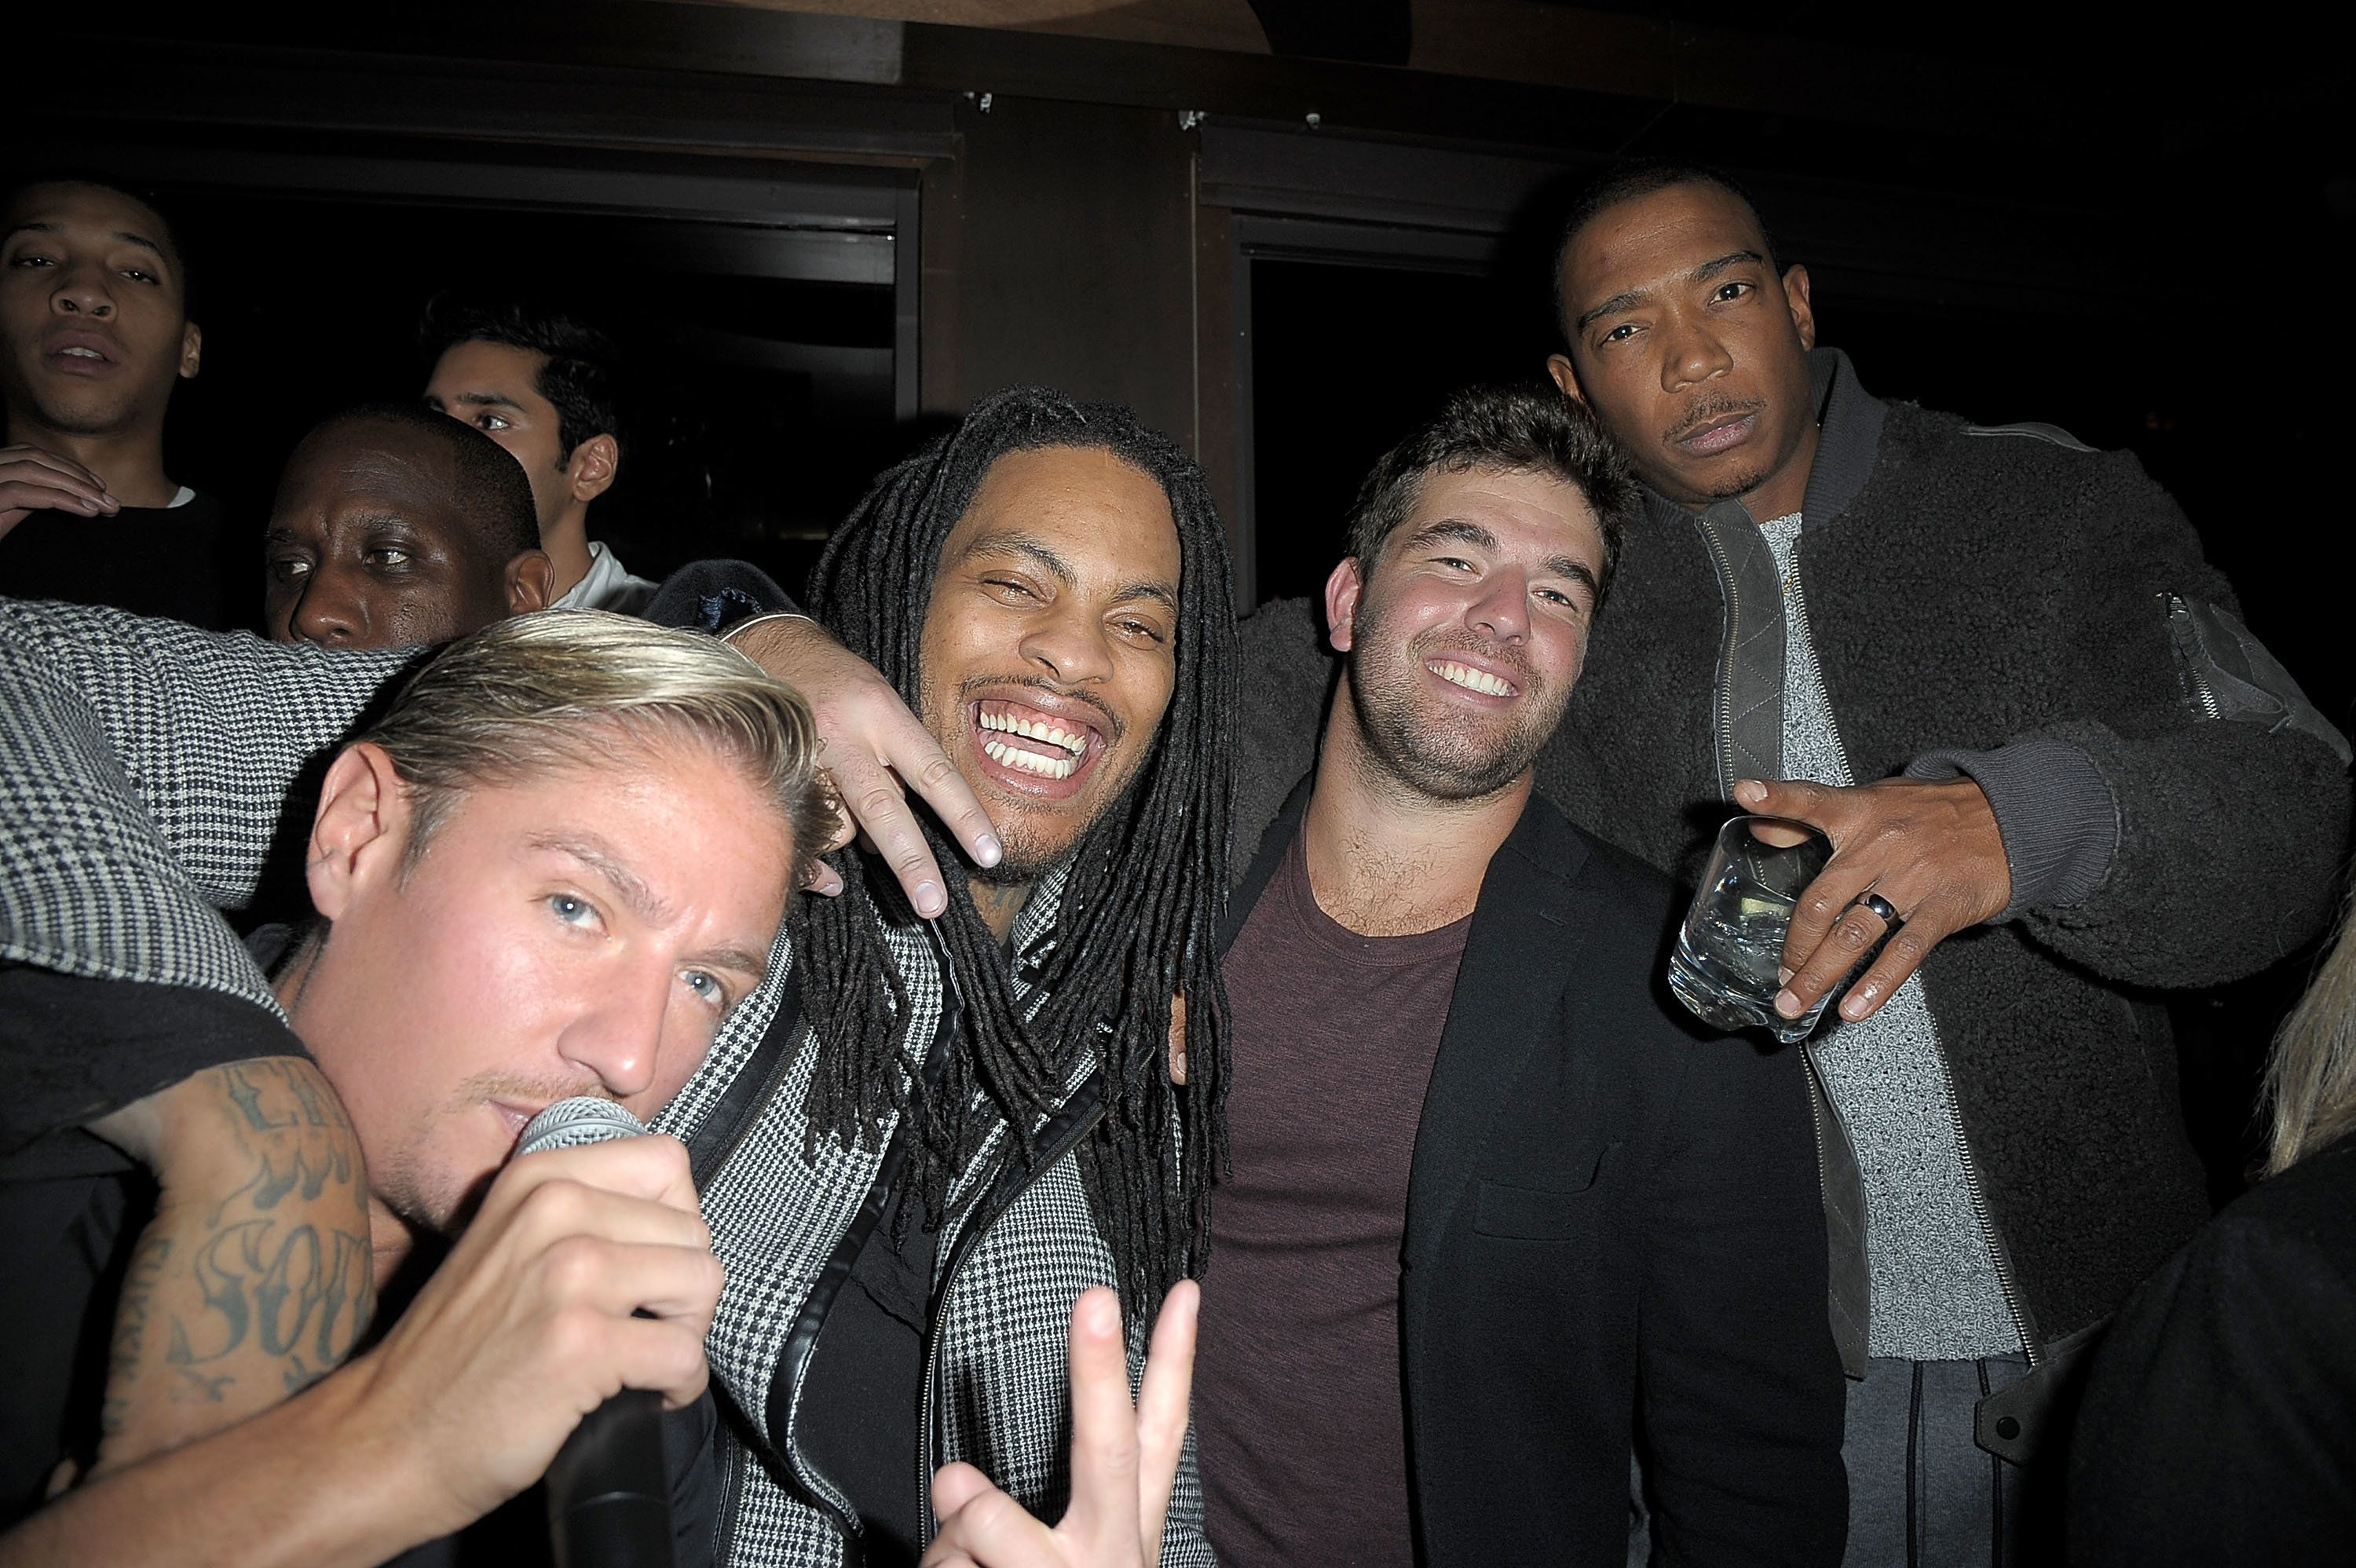 NEW YORK, NY - DECEMBER 14:  (L-R) Matthew Assante, Waka Flocka, Billy McFarland and Ja Rule attend 'Whisper Wednesdays' at PHD Terrace Dream Midtown on December 14, 2016 in New York City.  (Photo by Chance Yeh/Getty Images)